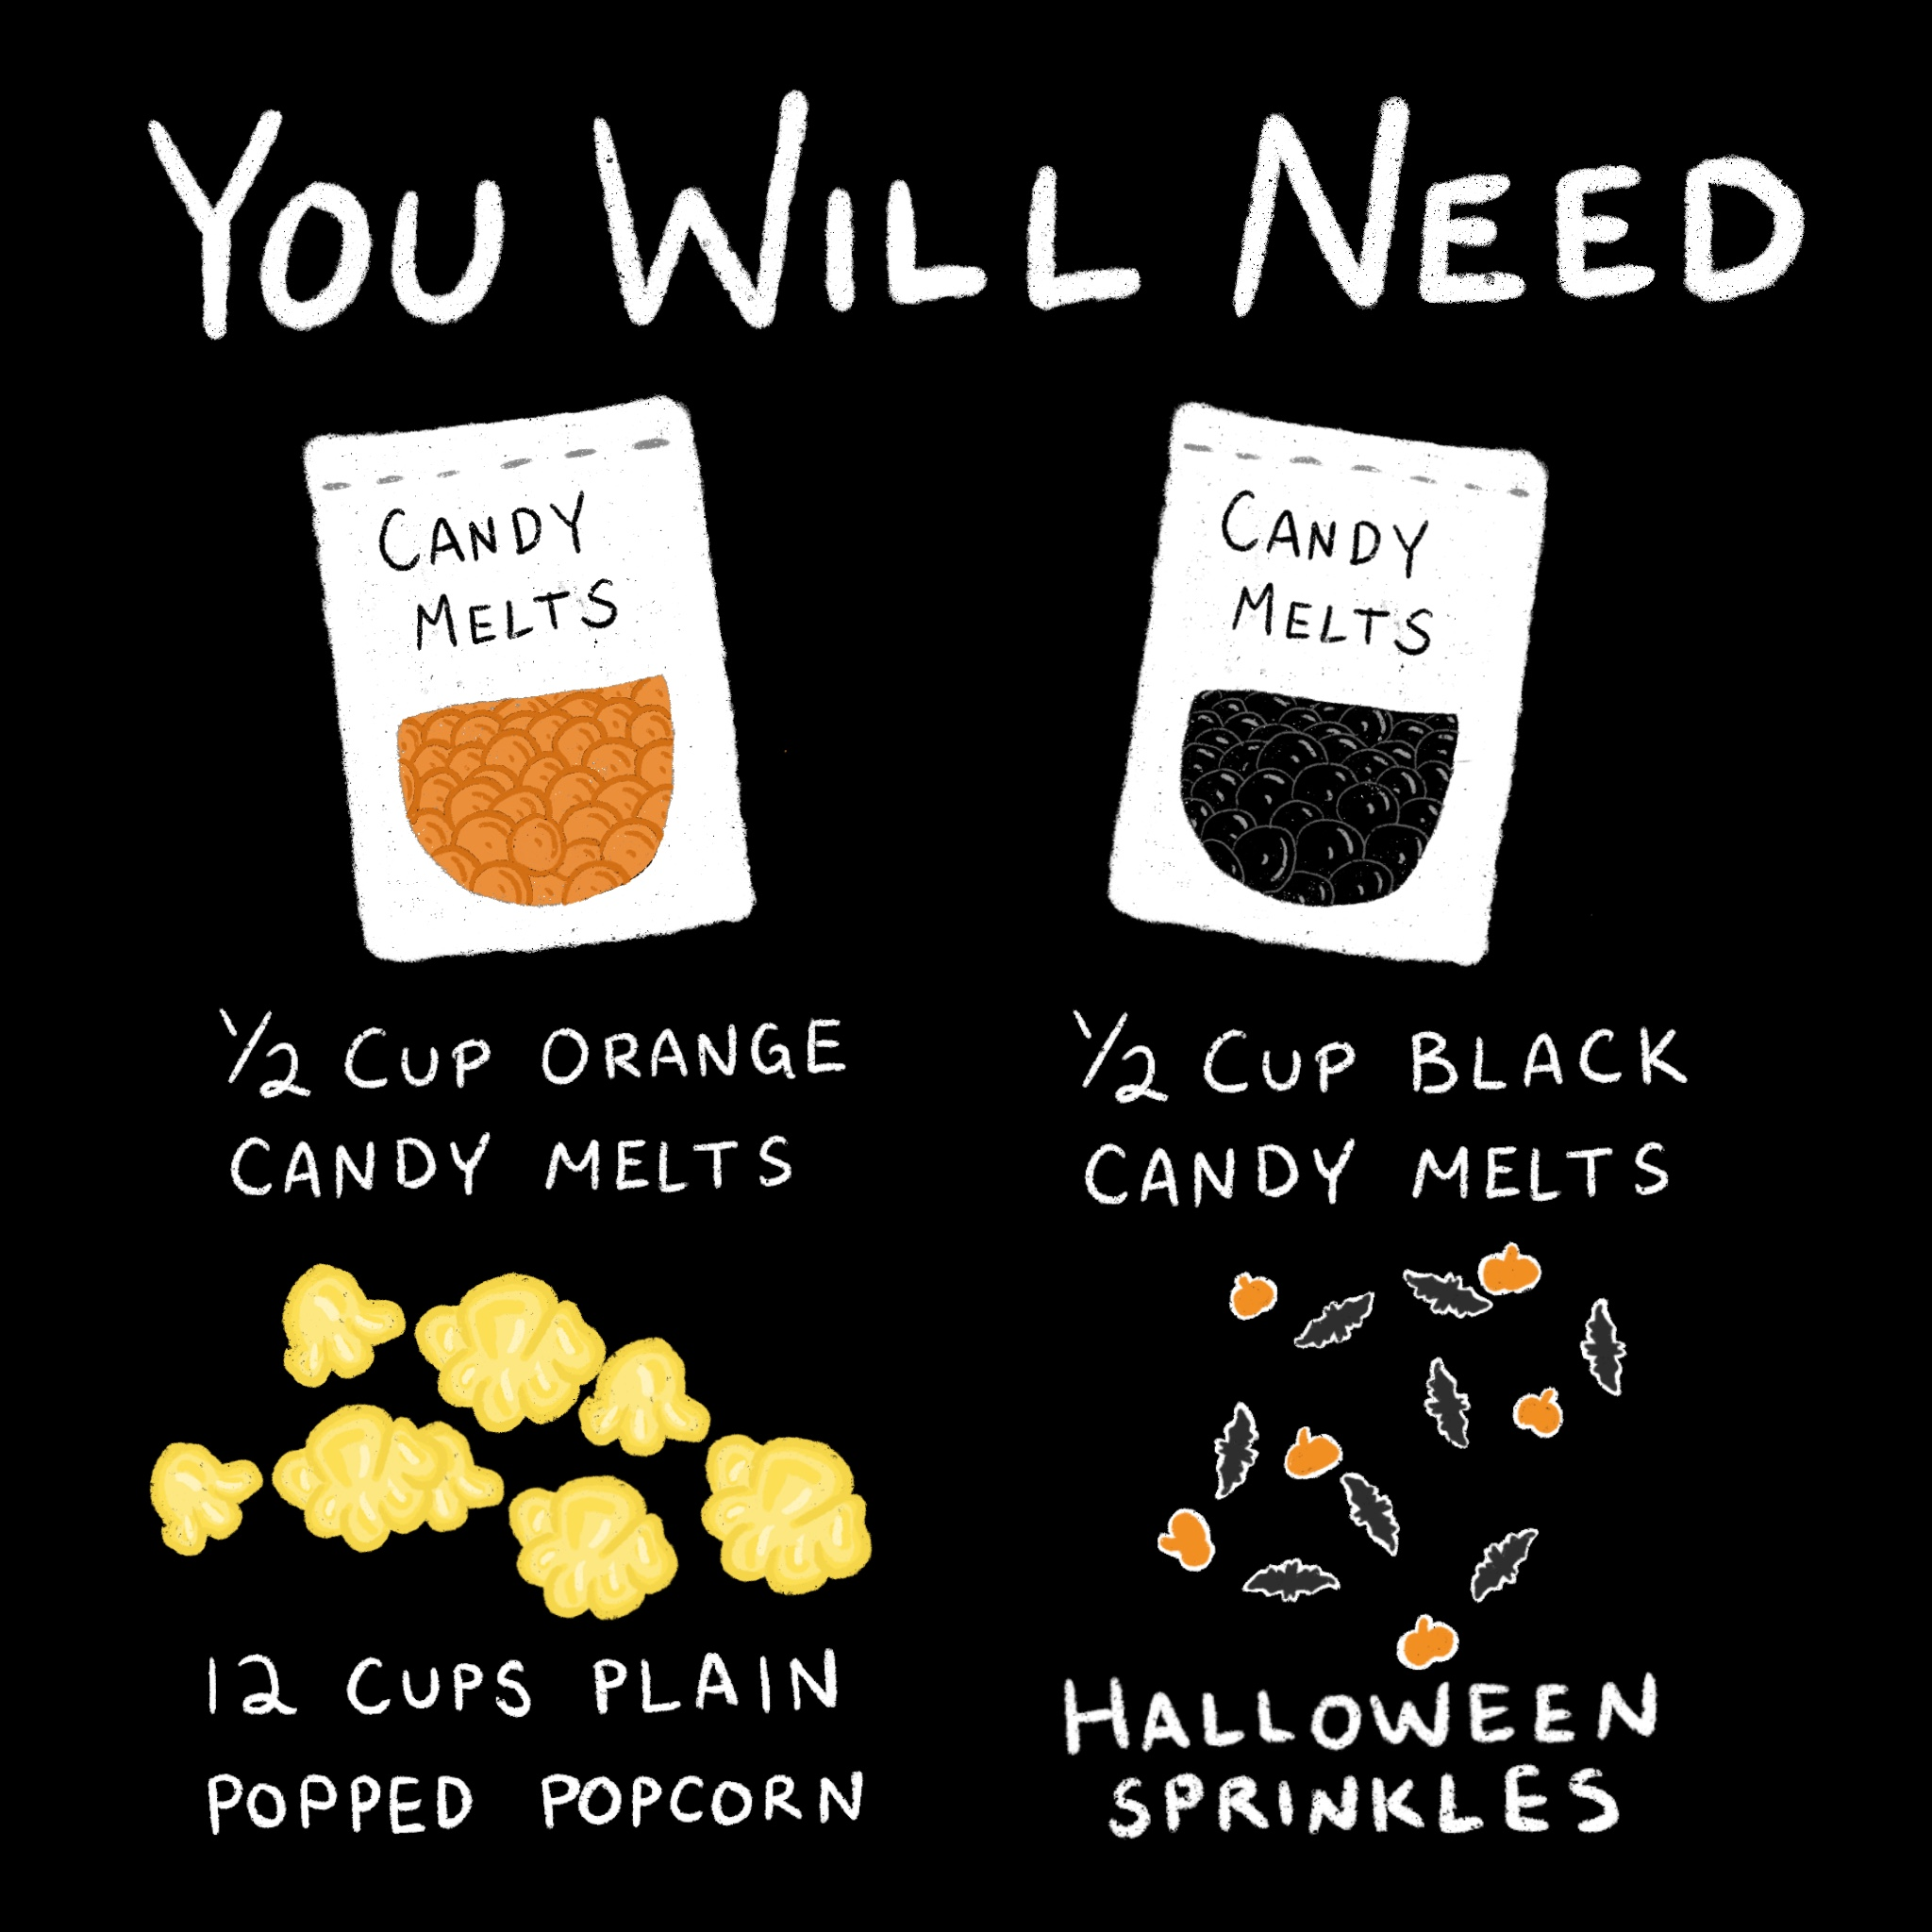 image with the text you will need: 1/2 cup orange candy melts, 1/2 cup black candy melts, 12 cups plain popcorn, halloween sprinkles